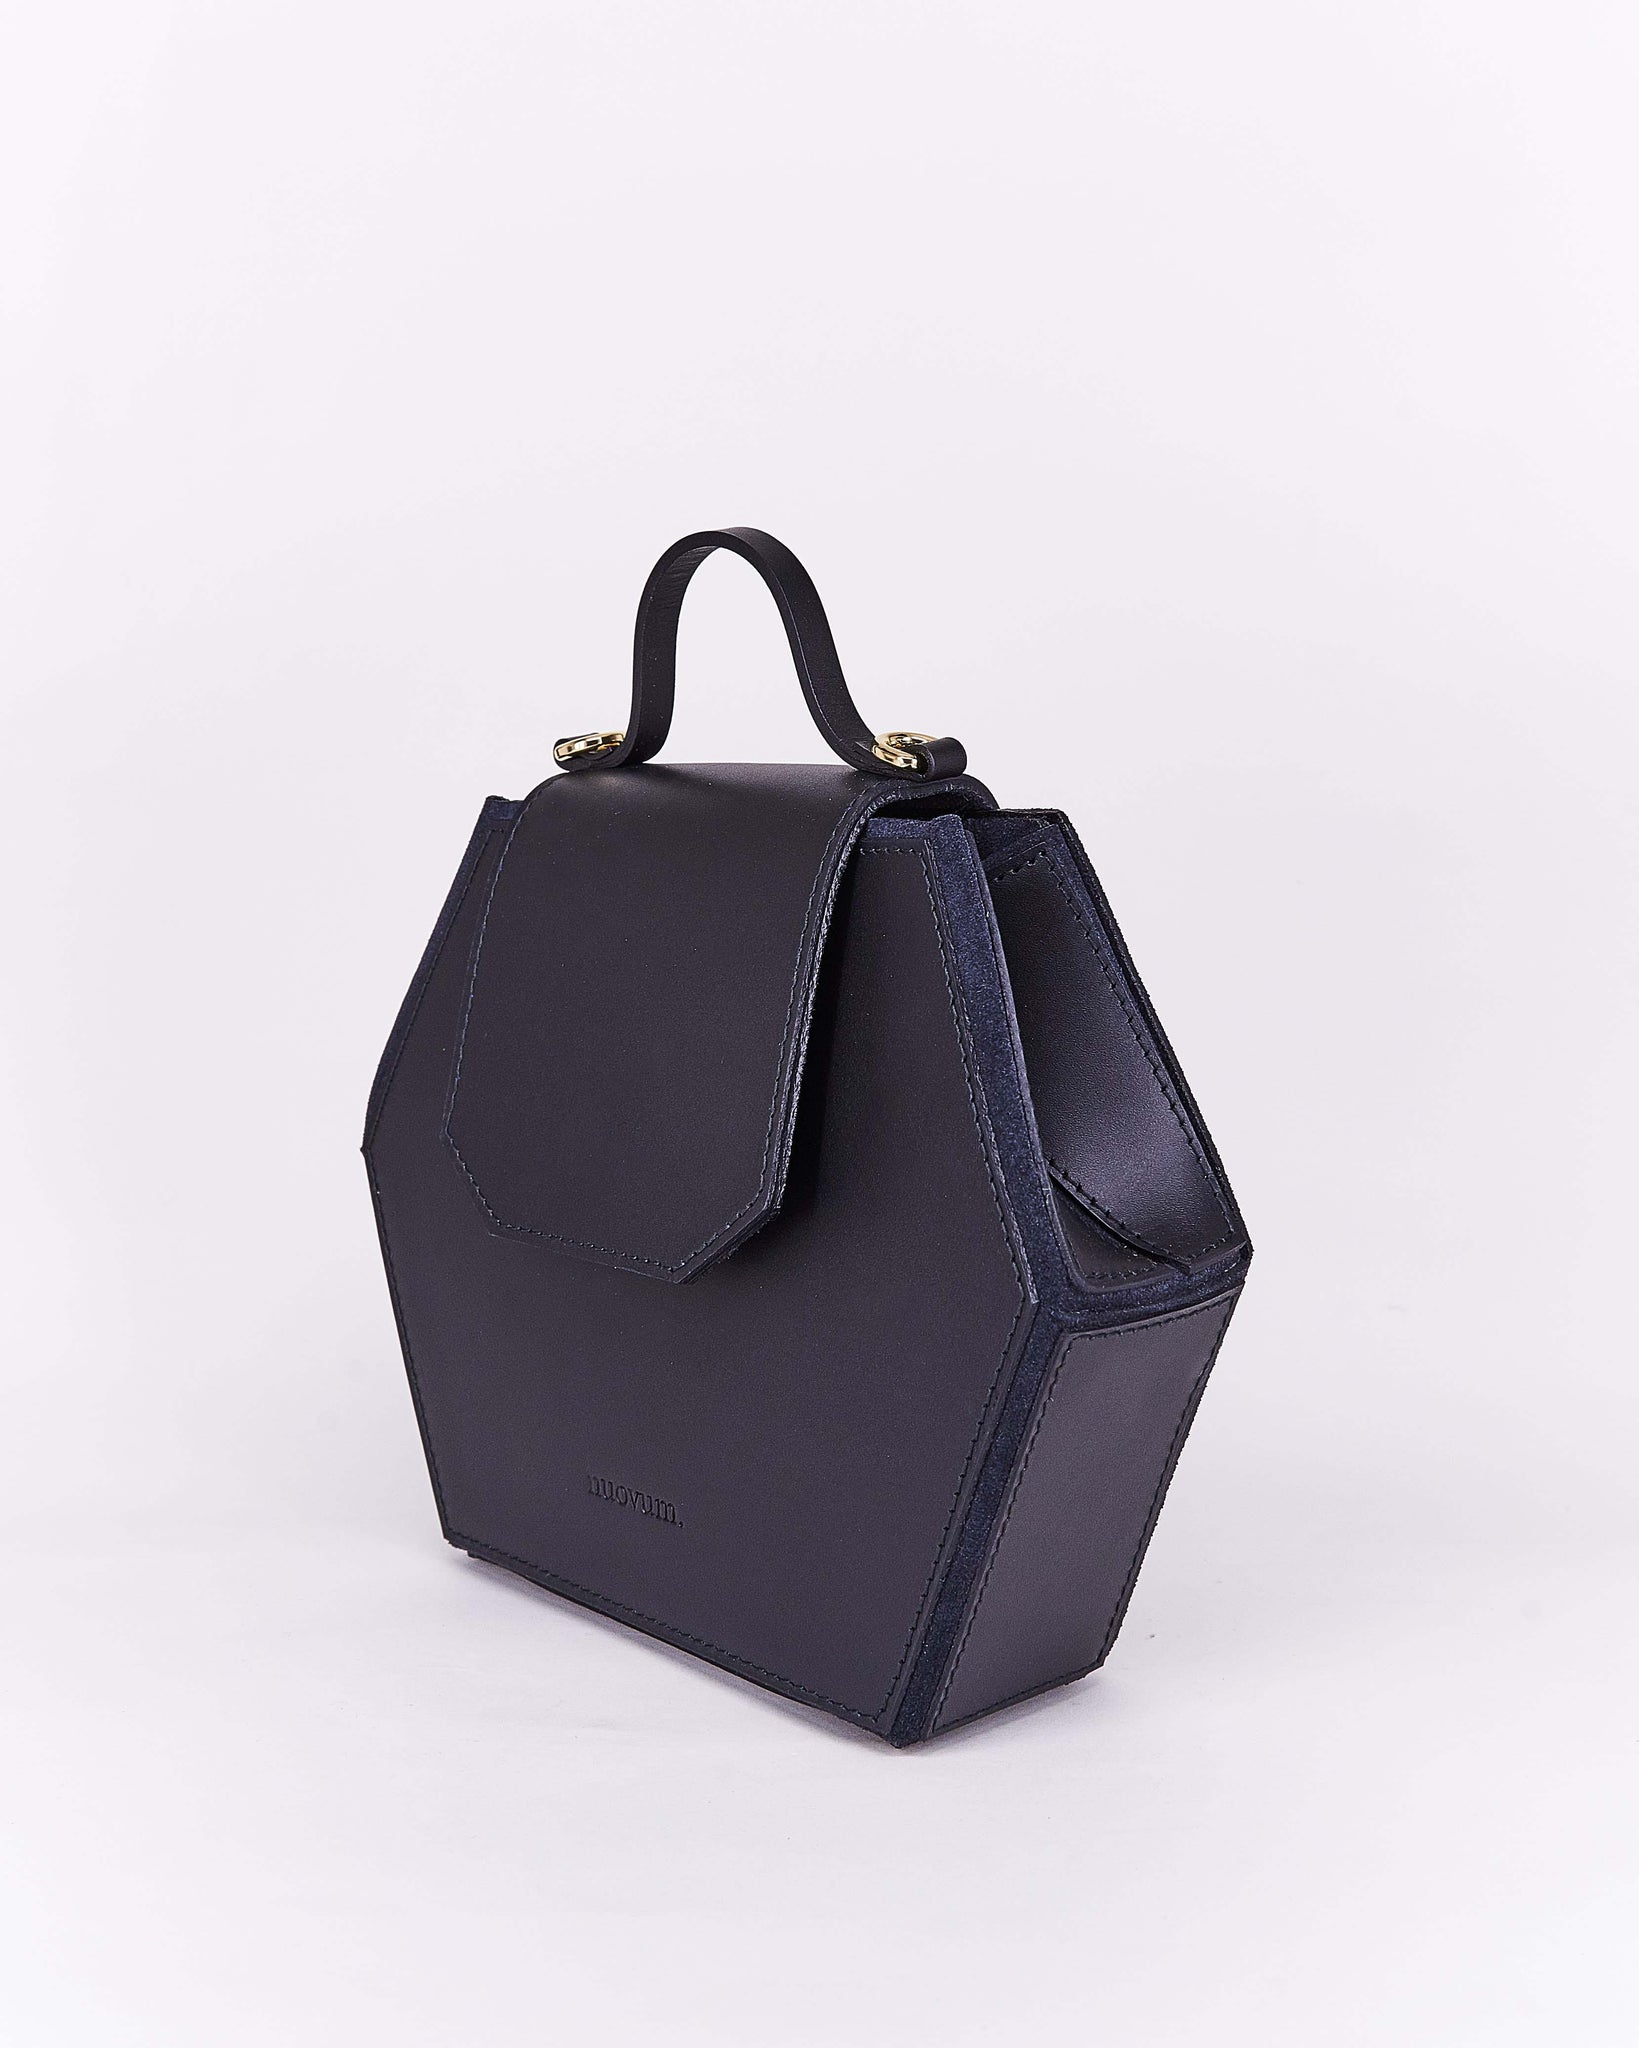 Nuo Hex Bag Black